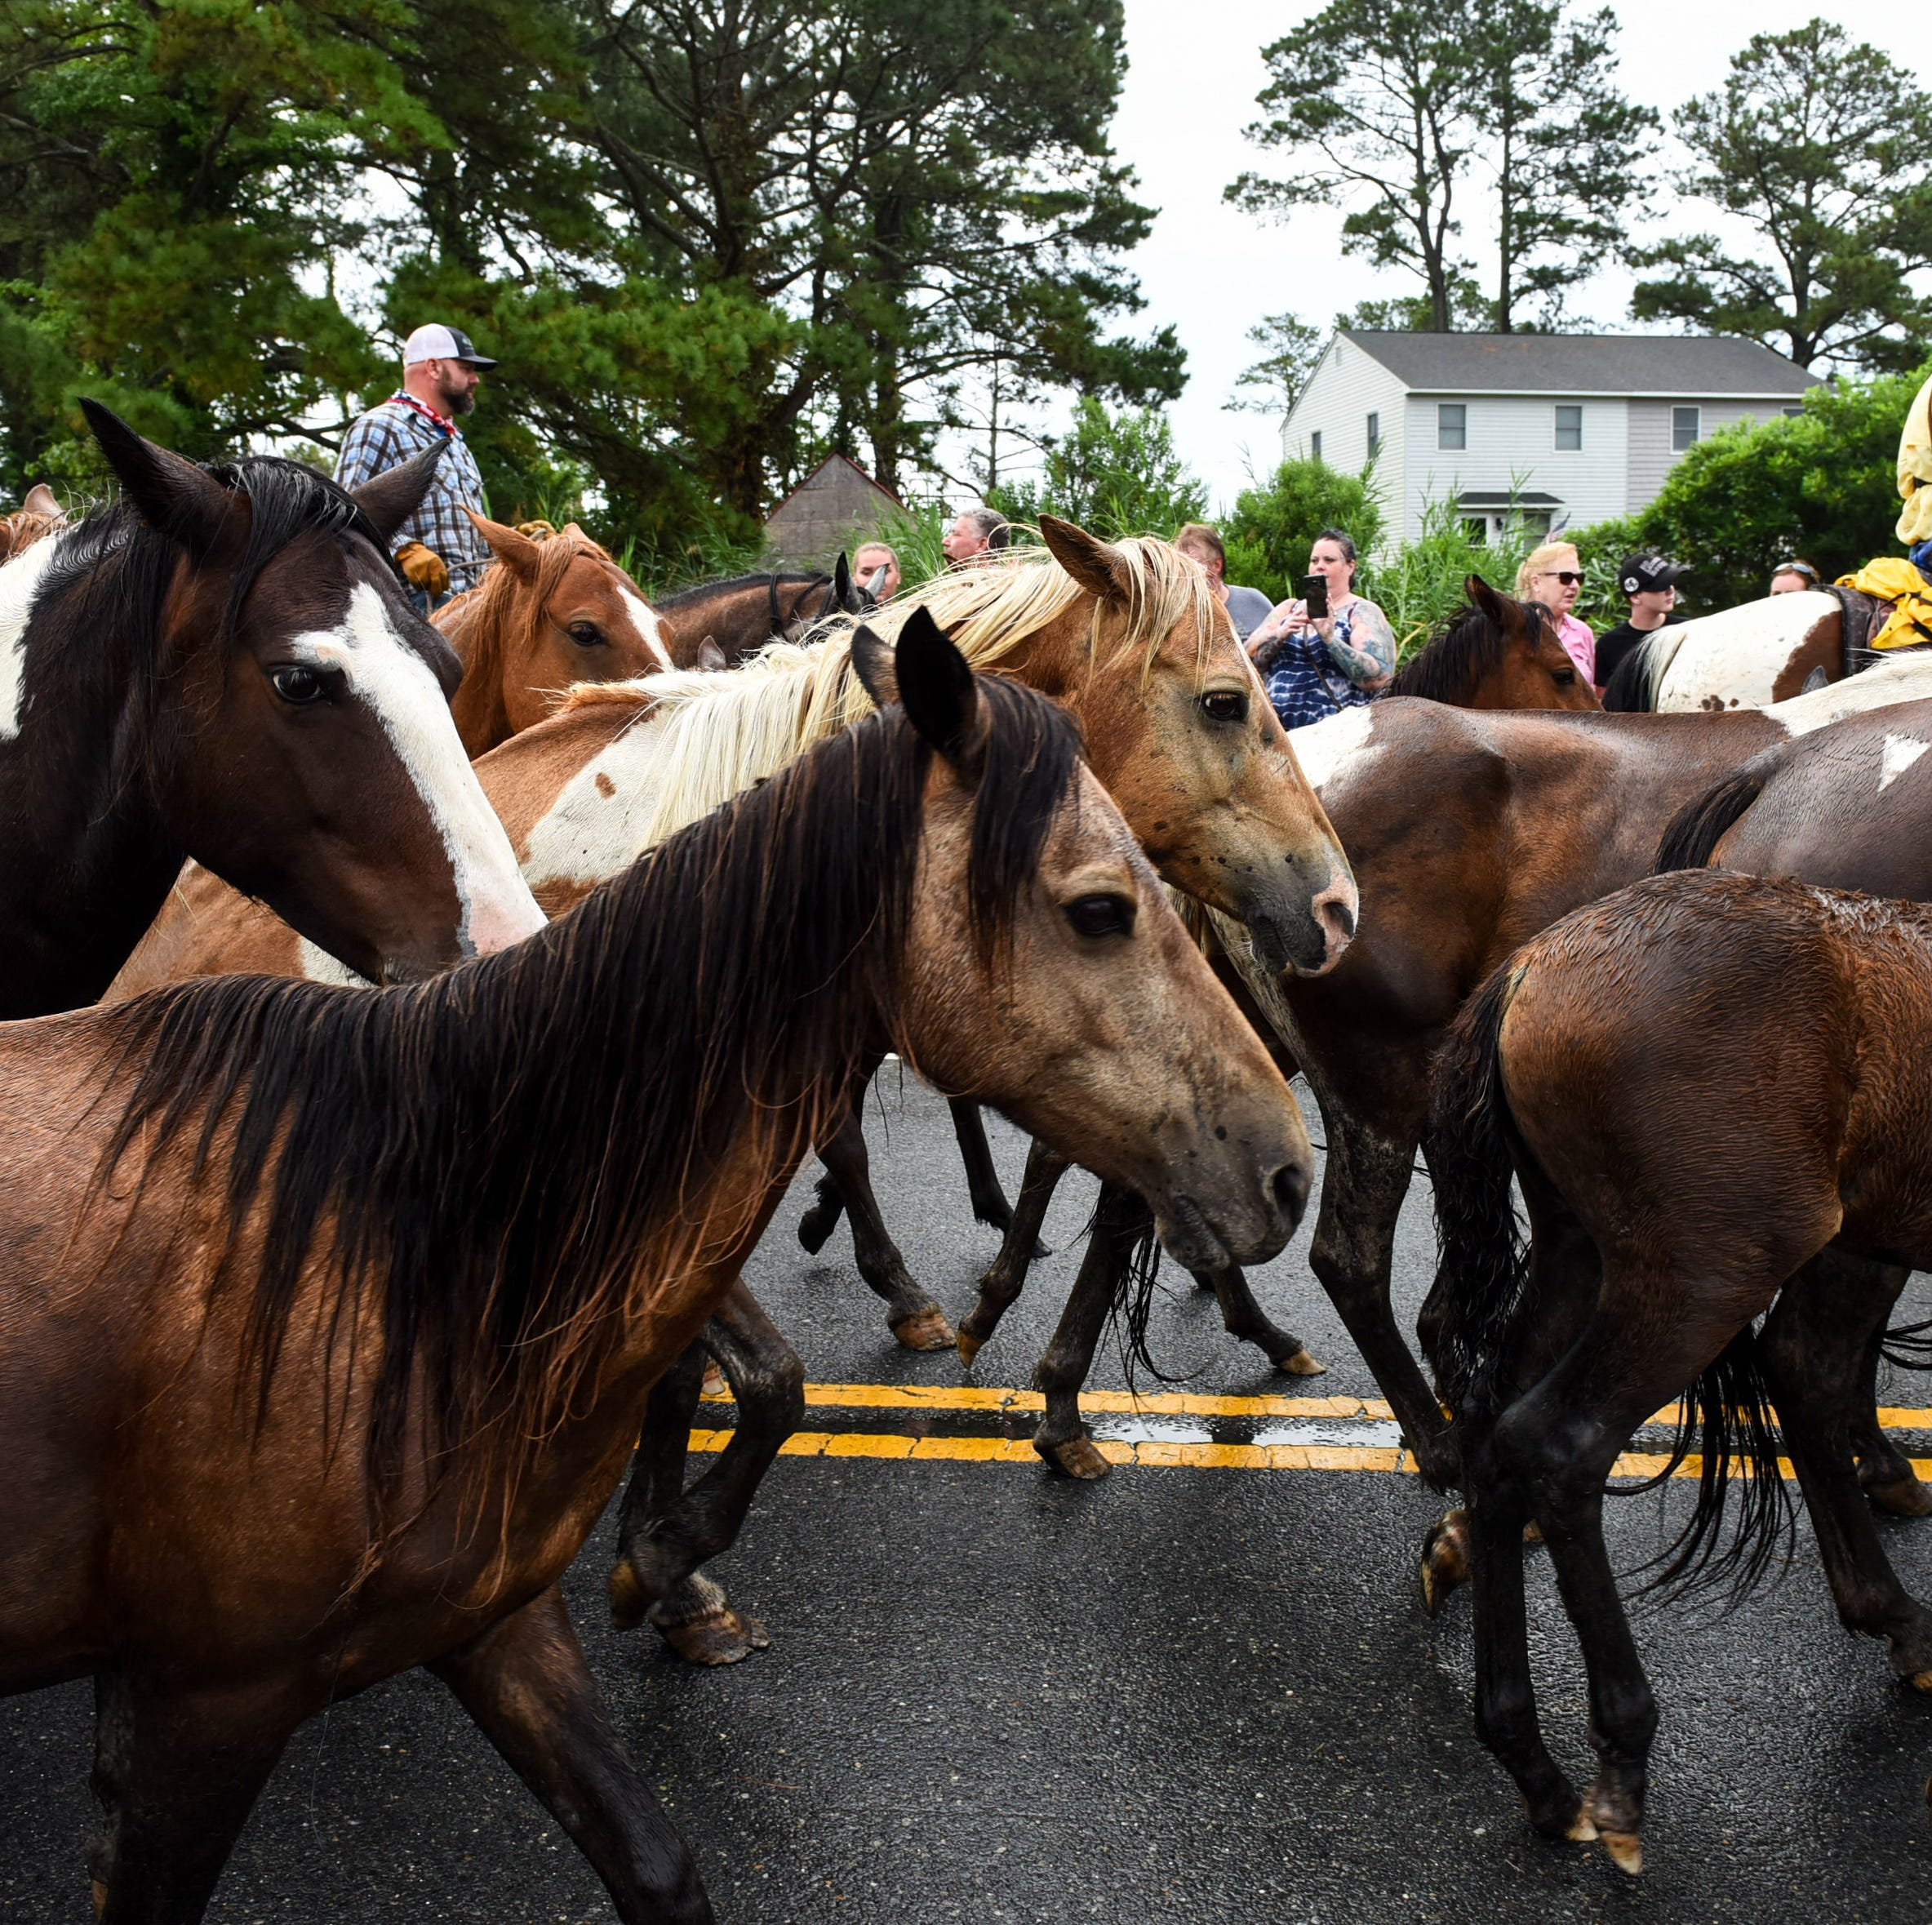 Chincoteague in top 3 coastal small towns: USA Today